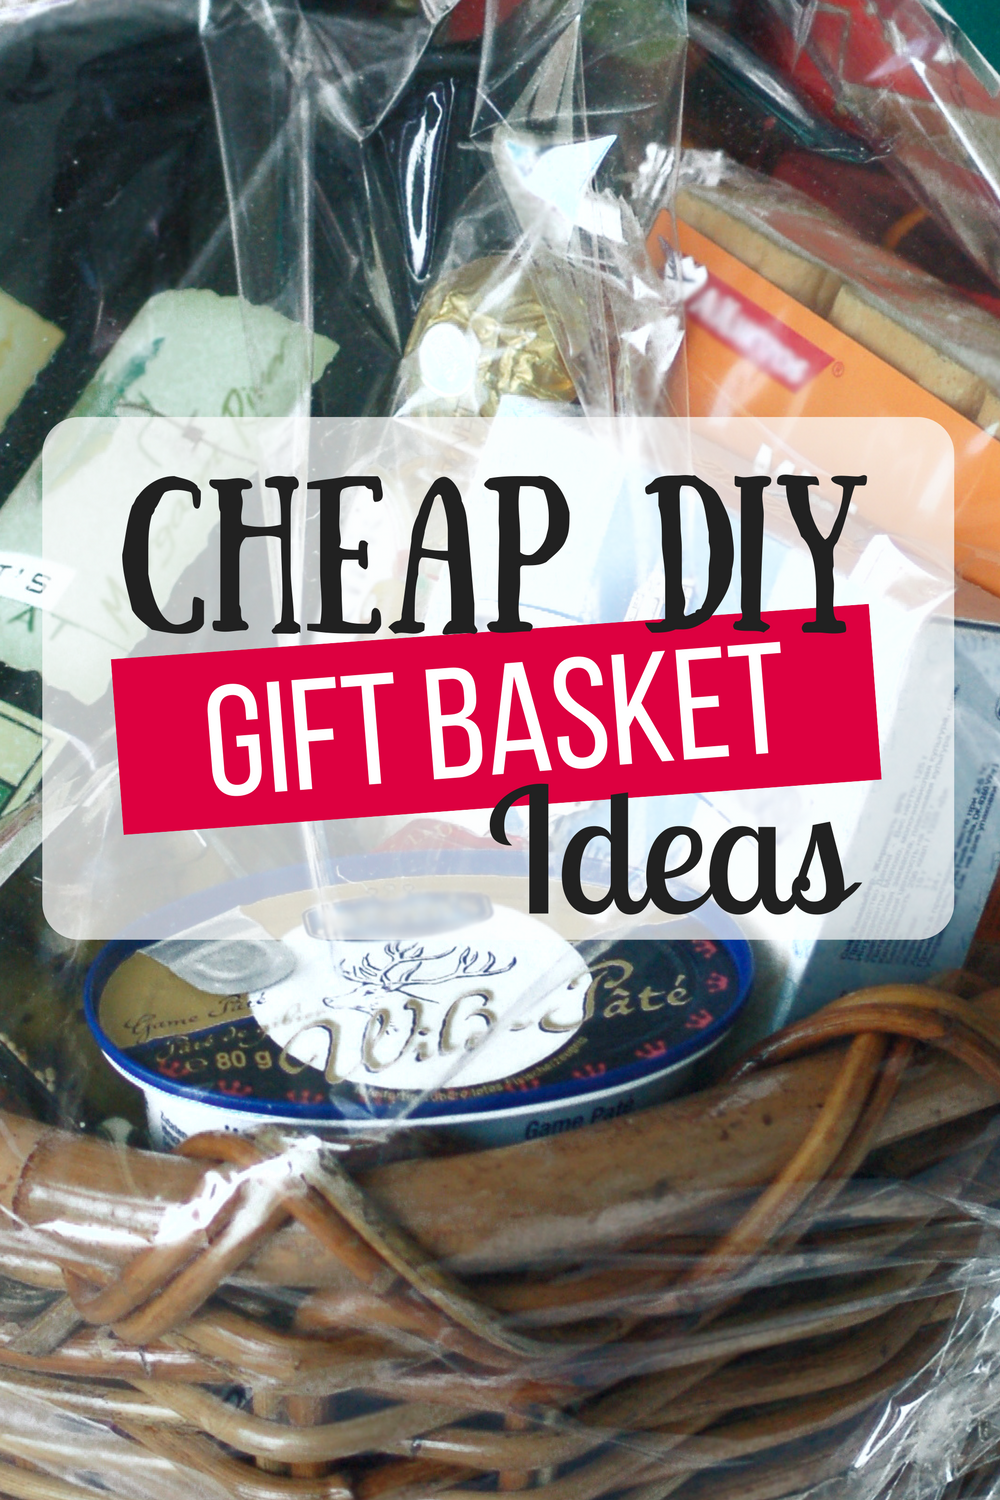 Cheap DIY Gift Baskets Ideas- Perfect timing! So many great ideas! I was able to whip up two baskets today just from stuff we had in our house! As in, I spent nothing for two great gifts! Cheap DIY Gift baskets indeed bwahaha. I've been on Pinterest for weeks trying to find unique Christmas gift ideas for our tight budget. We don't have a lot of money but still wanted to give good Christmas gifts. This was an answer to my prayers. 😄